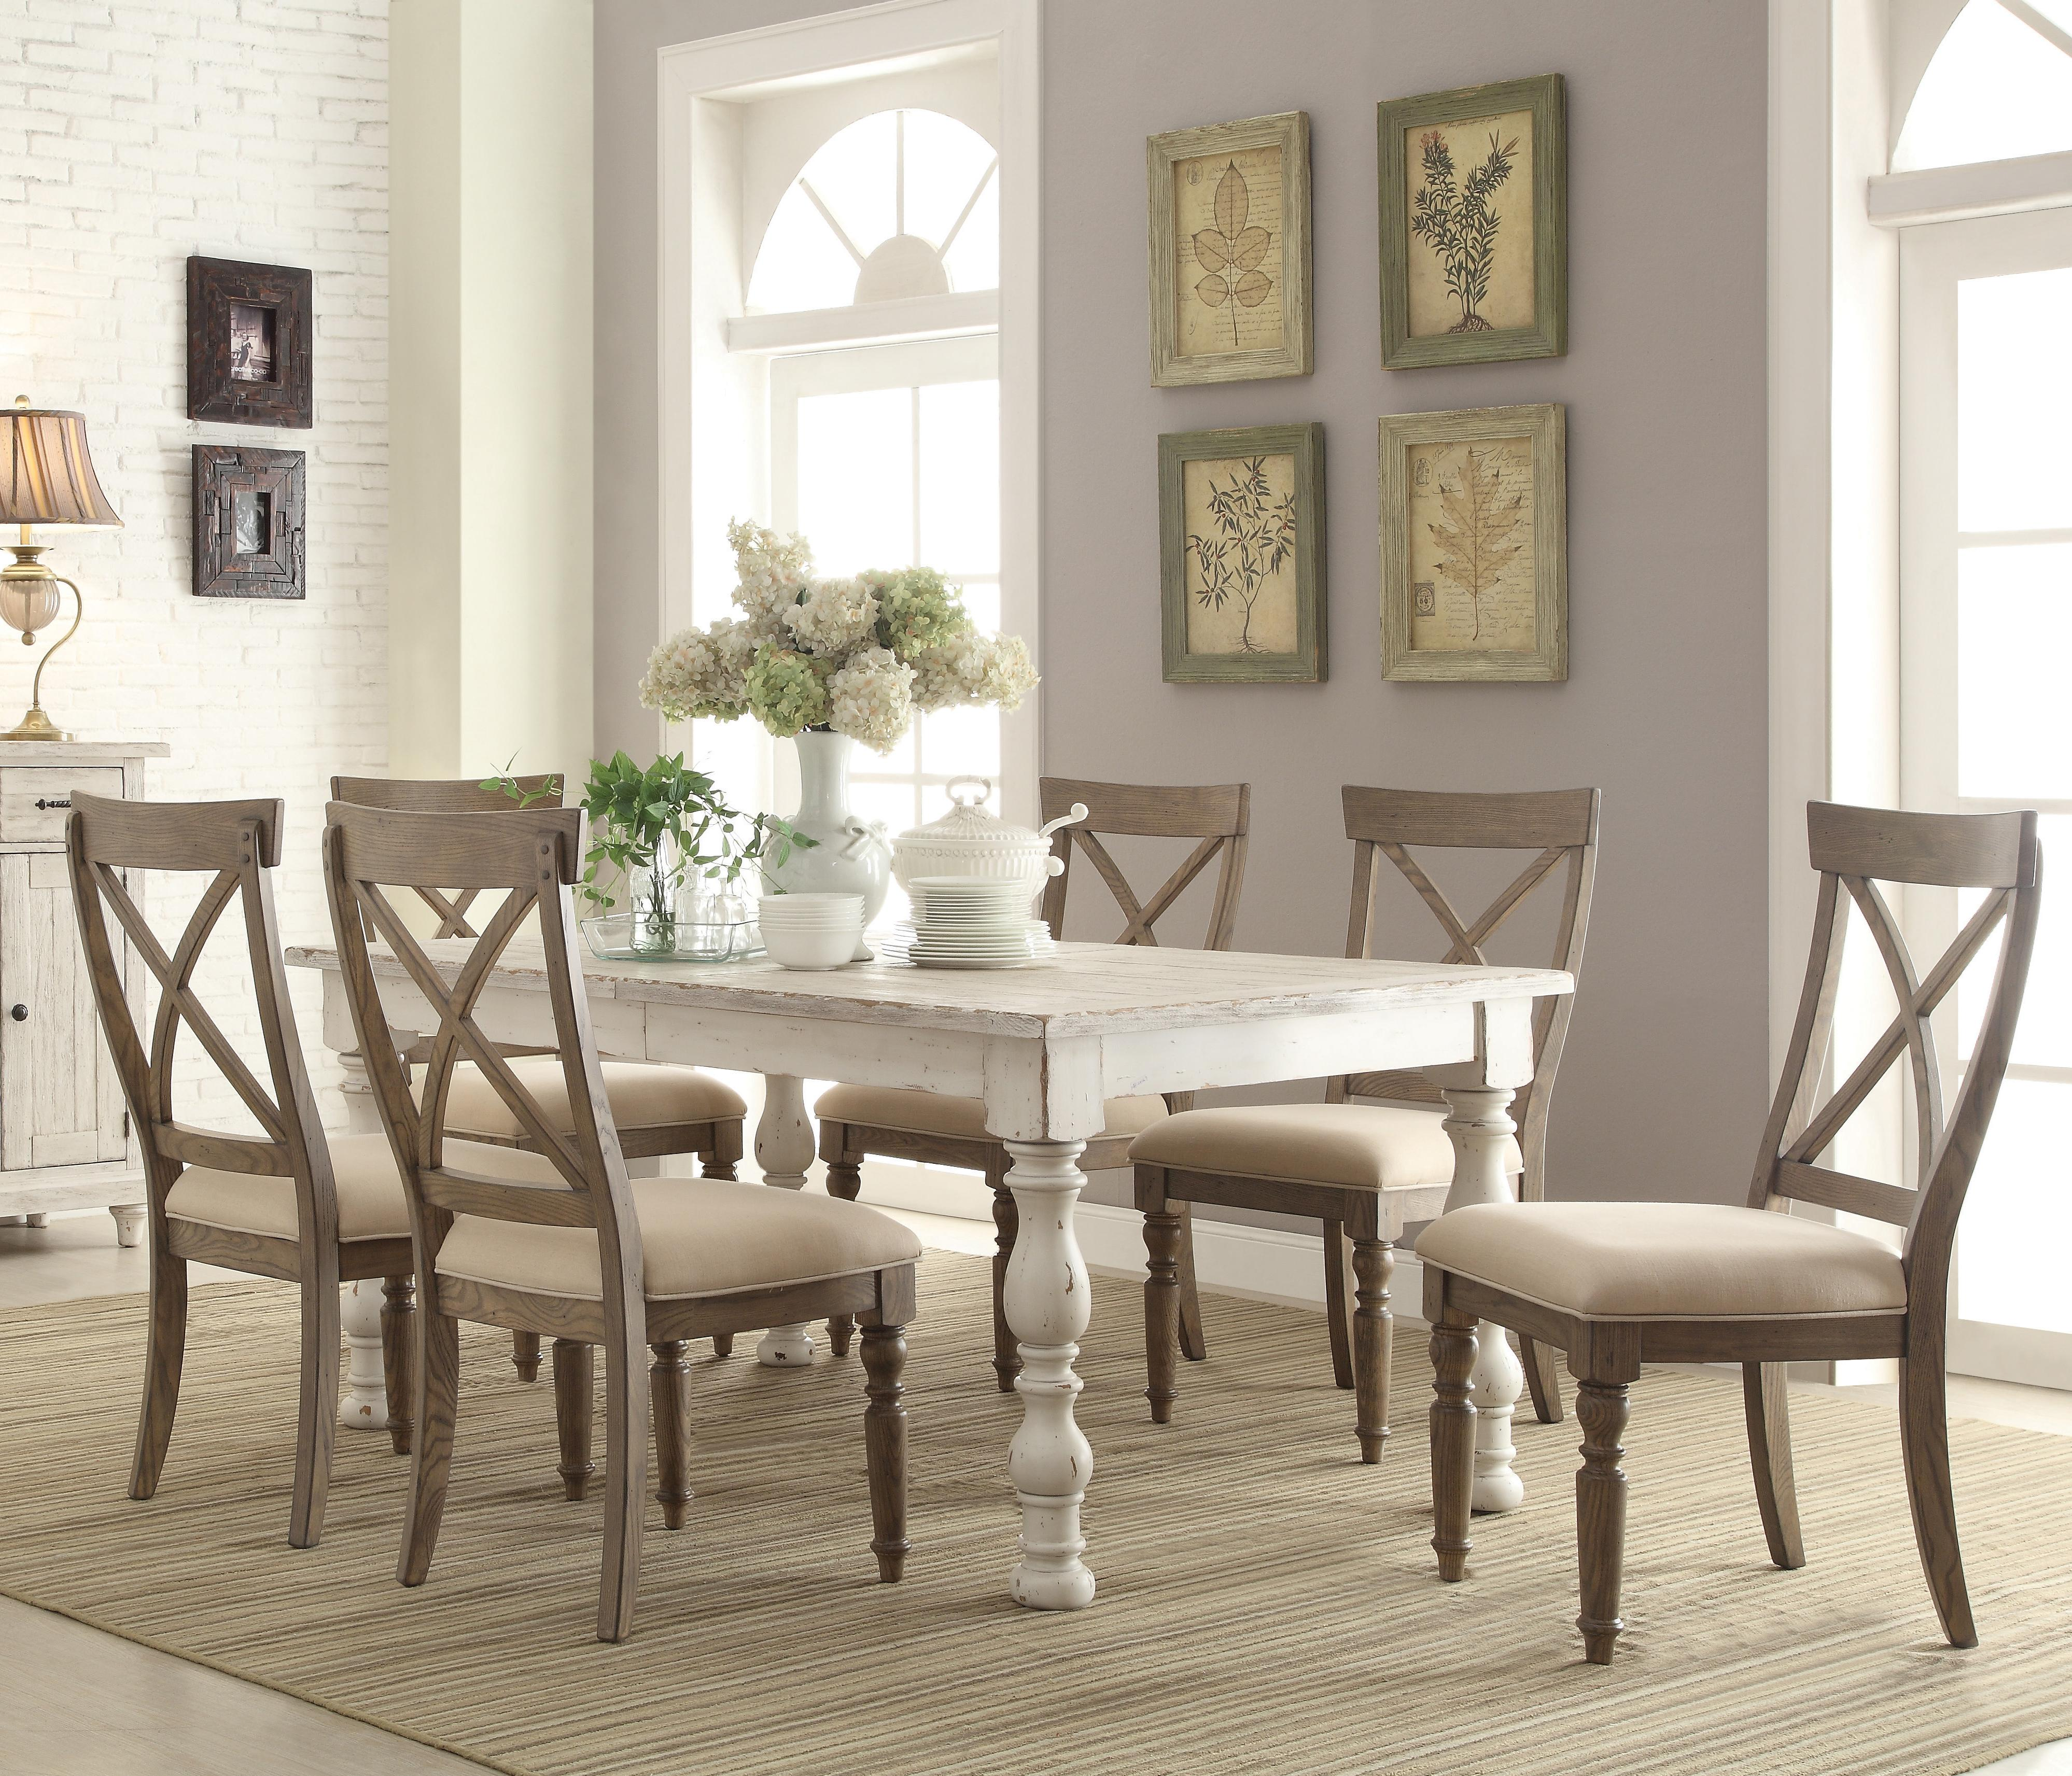 Farmhouse Dining Chairs 7 Piece Farmhouse Dining Set By Riverside Furniture Wolf